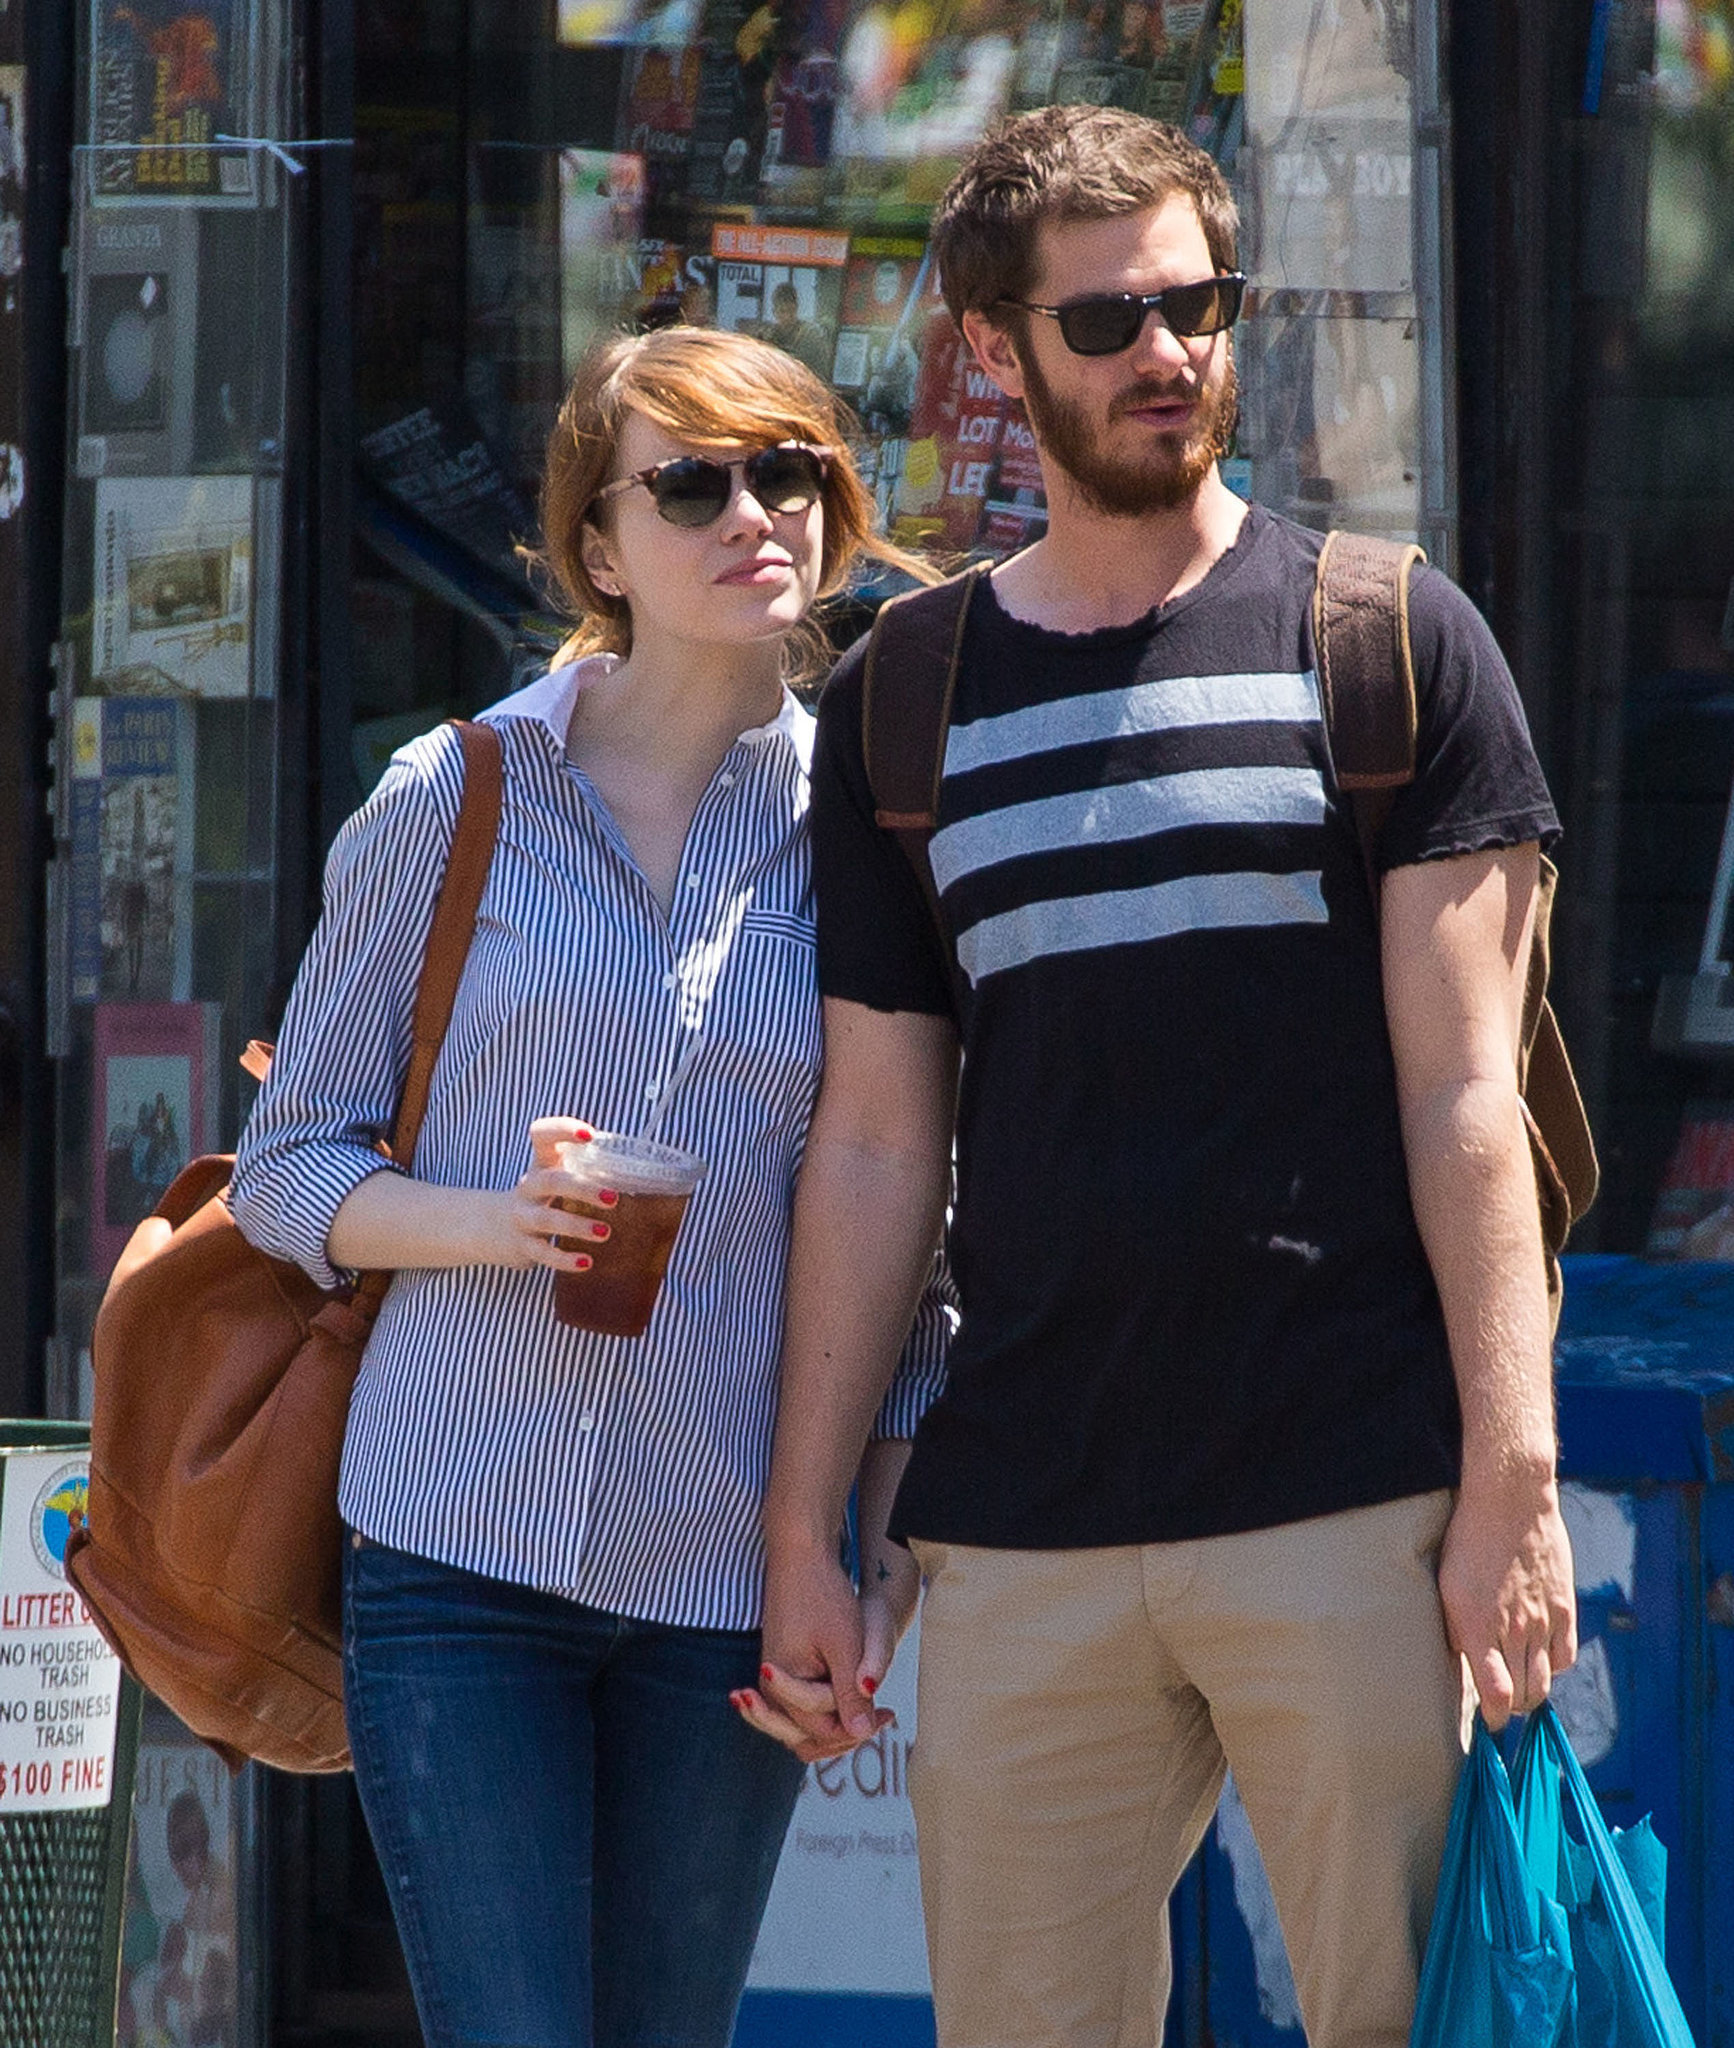 Emma Stone and Andrew Garfield held hands while leaving a bookstore together in NYC on Monday.